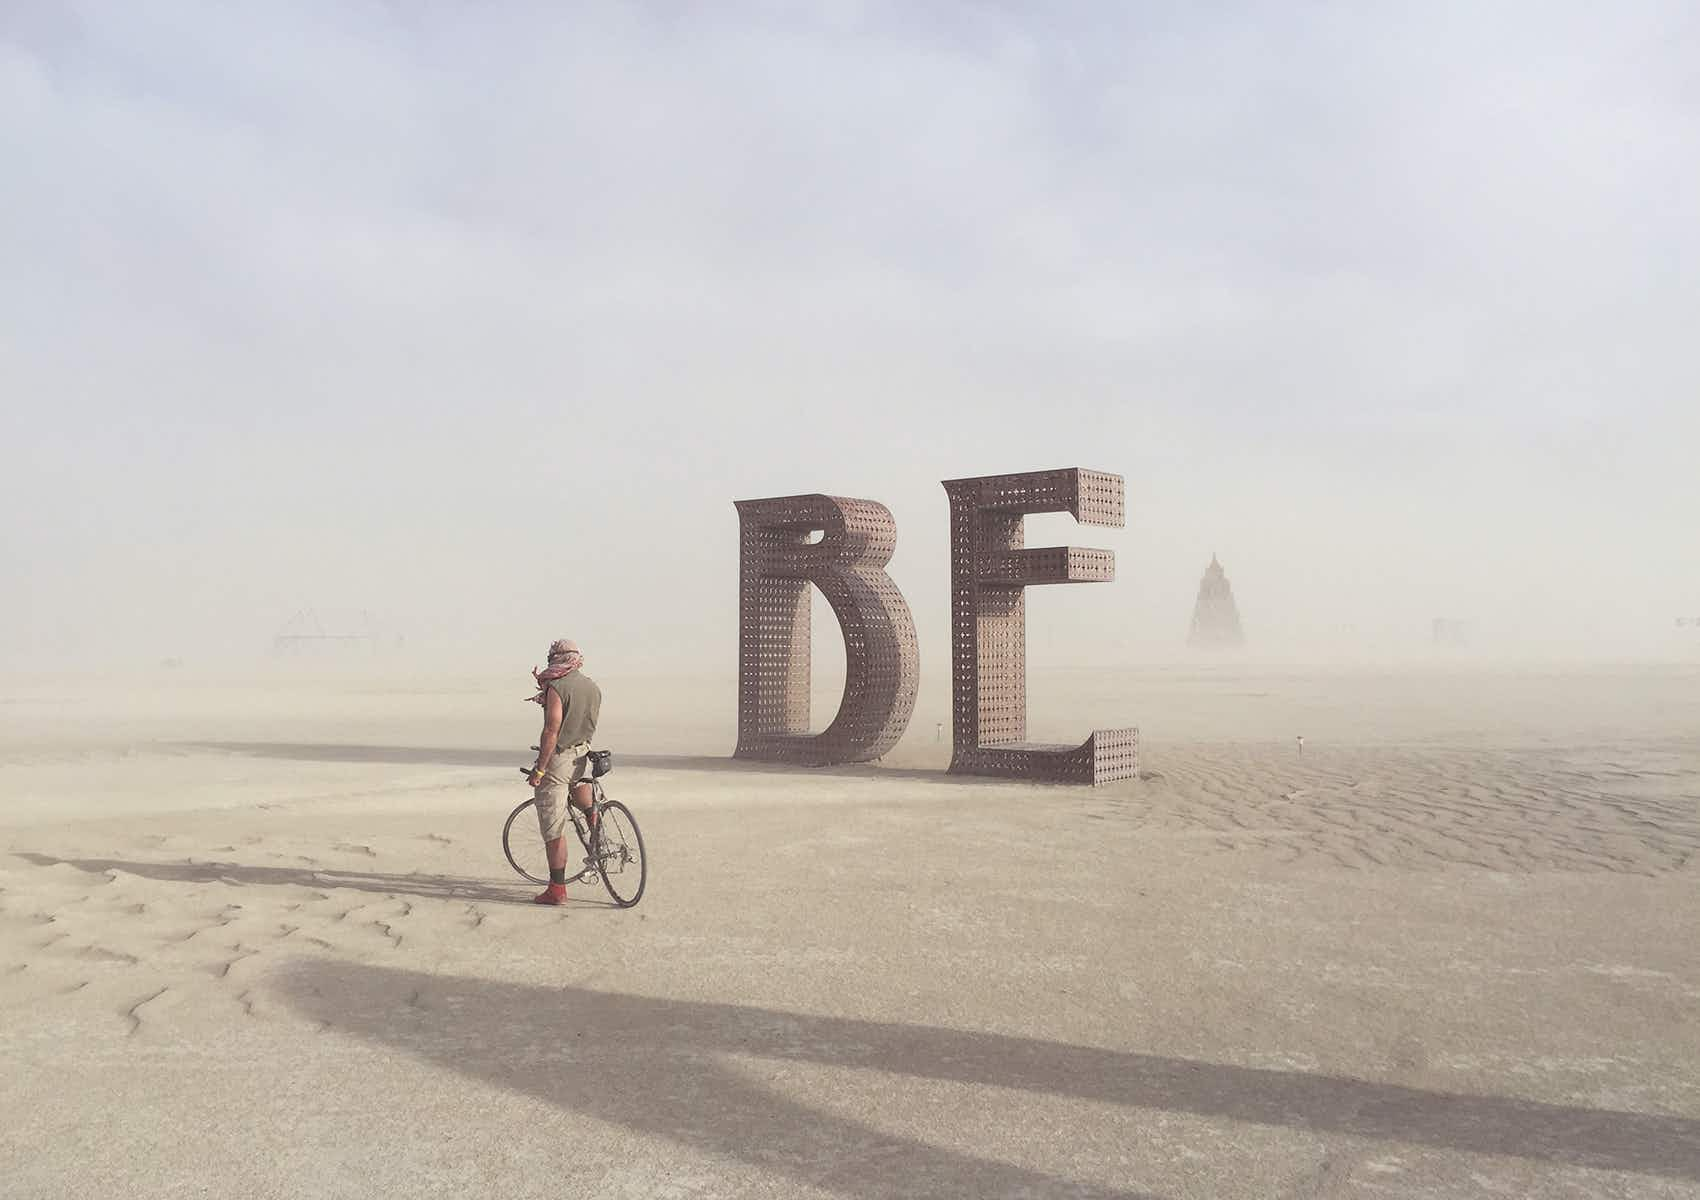 Photographer shares images from six years of Burning Man desert festival